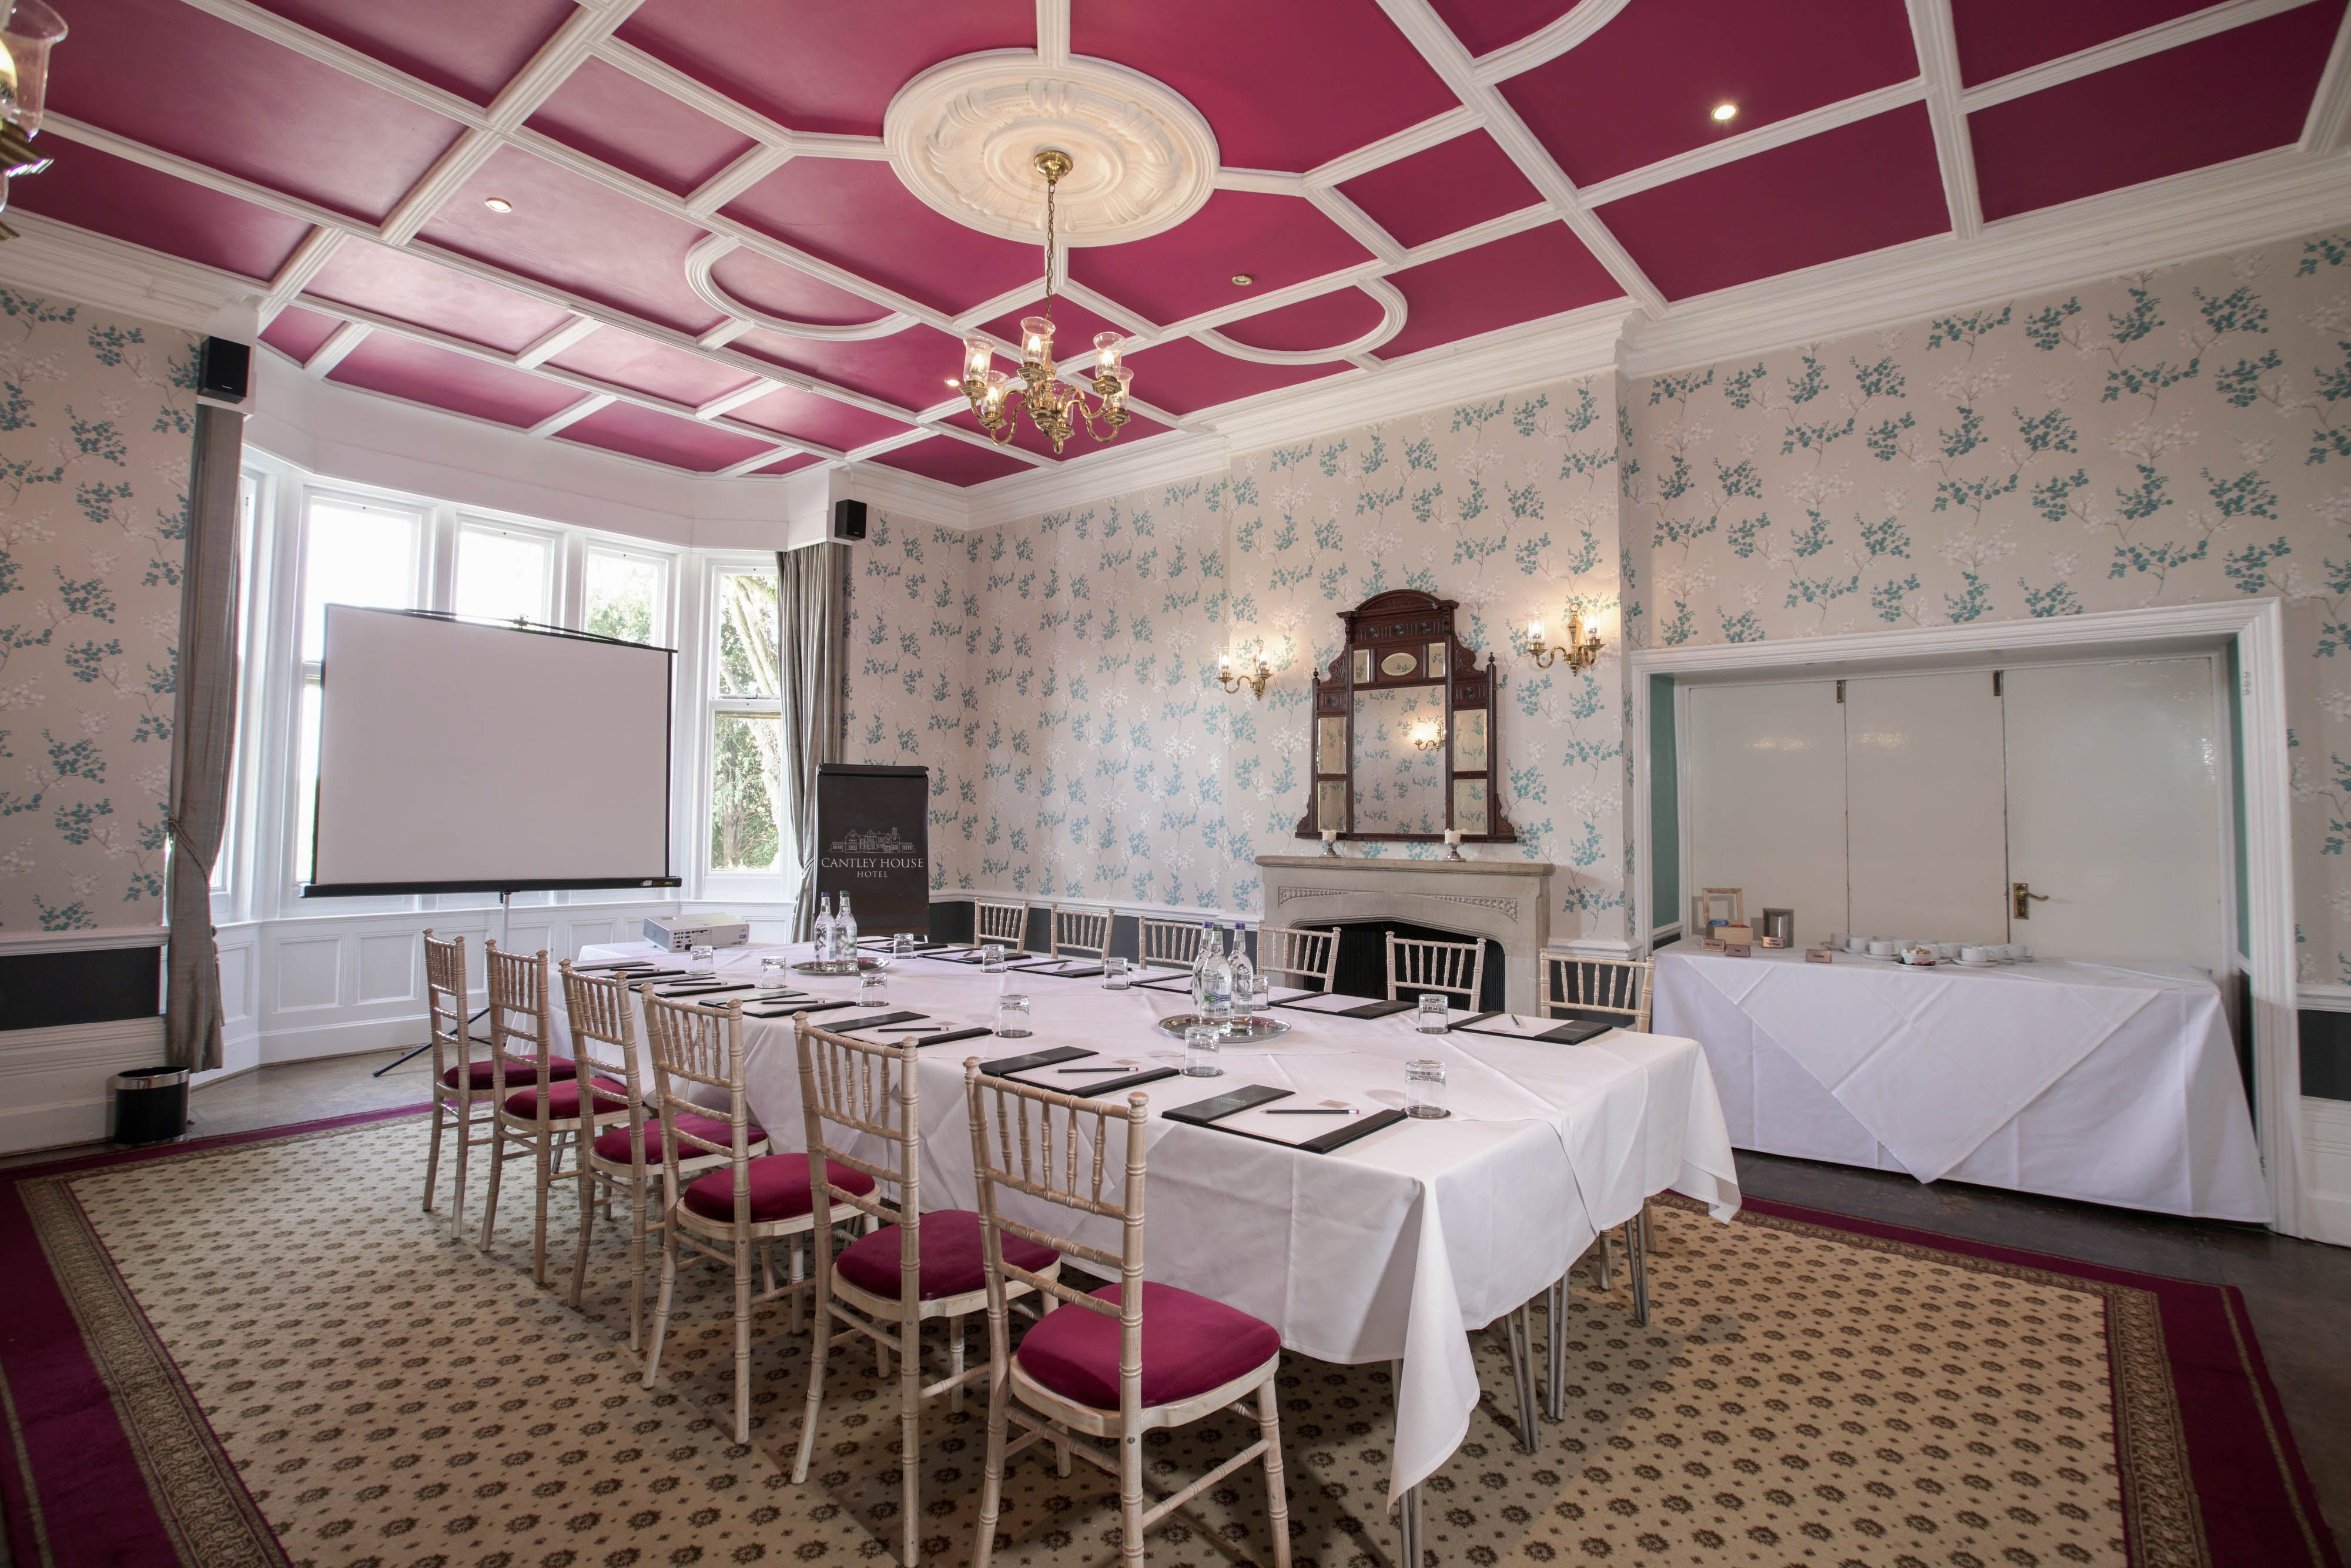 Meeting, Ormonde Room, Cantley House, stately home